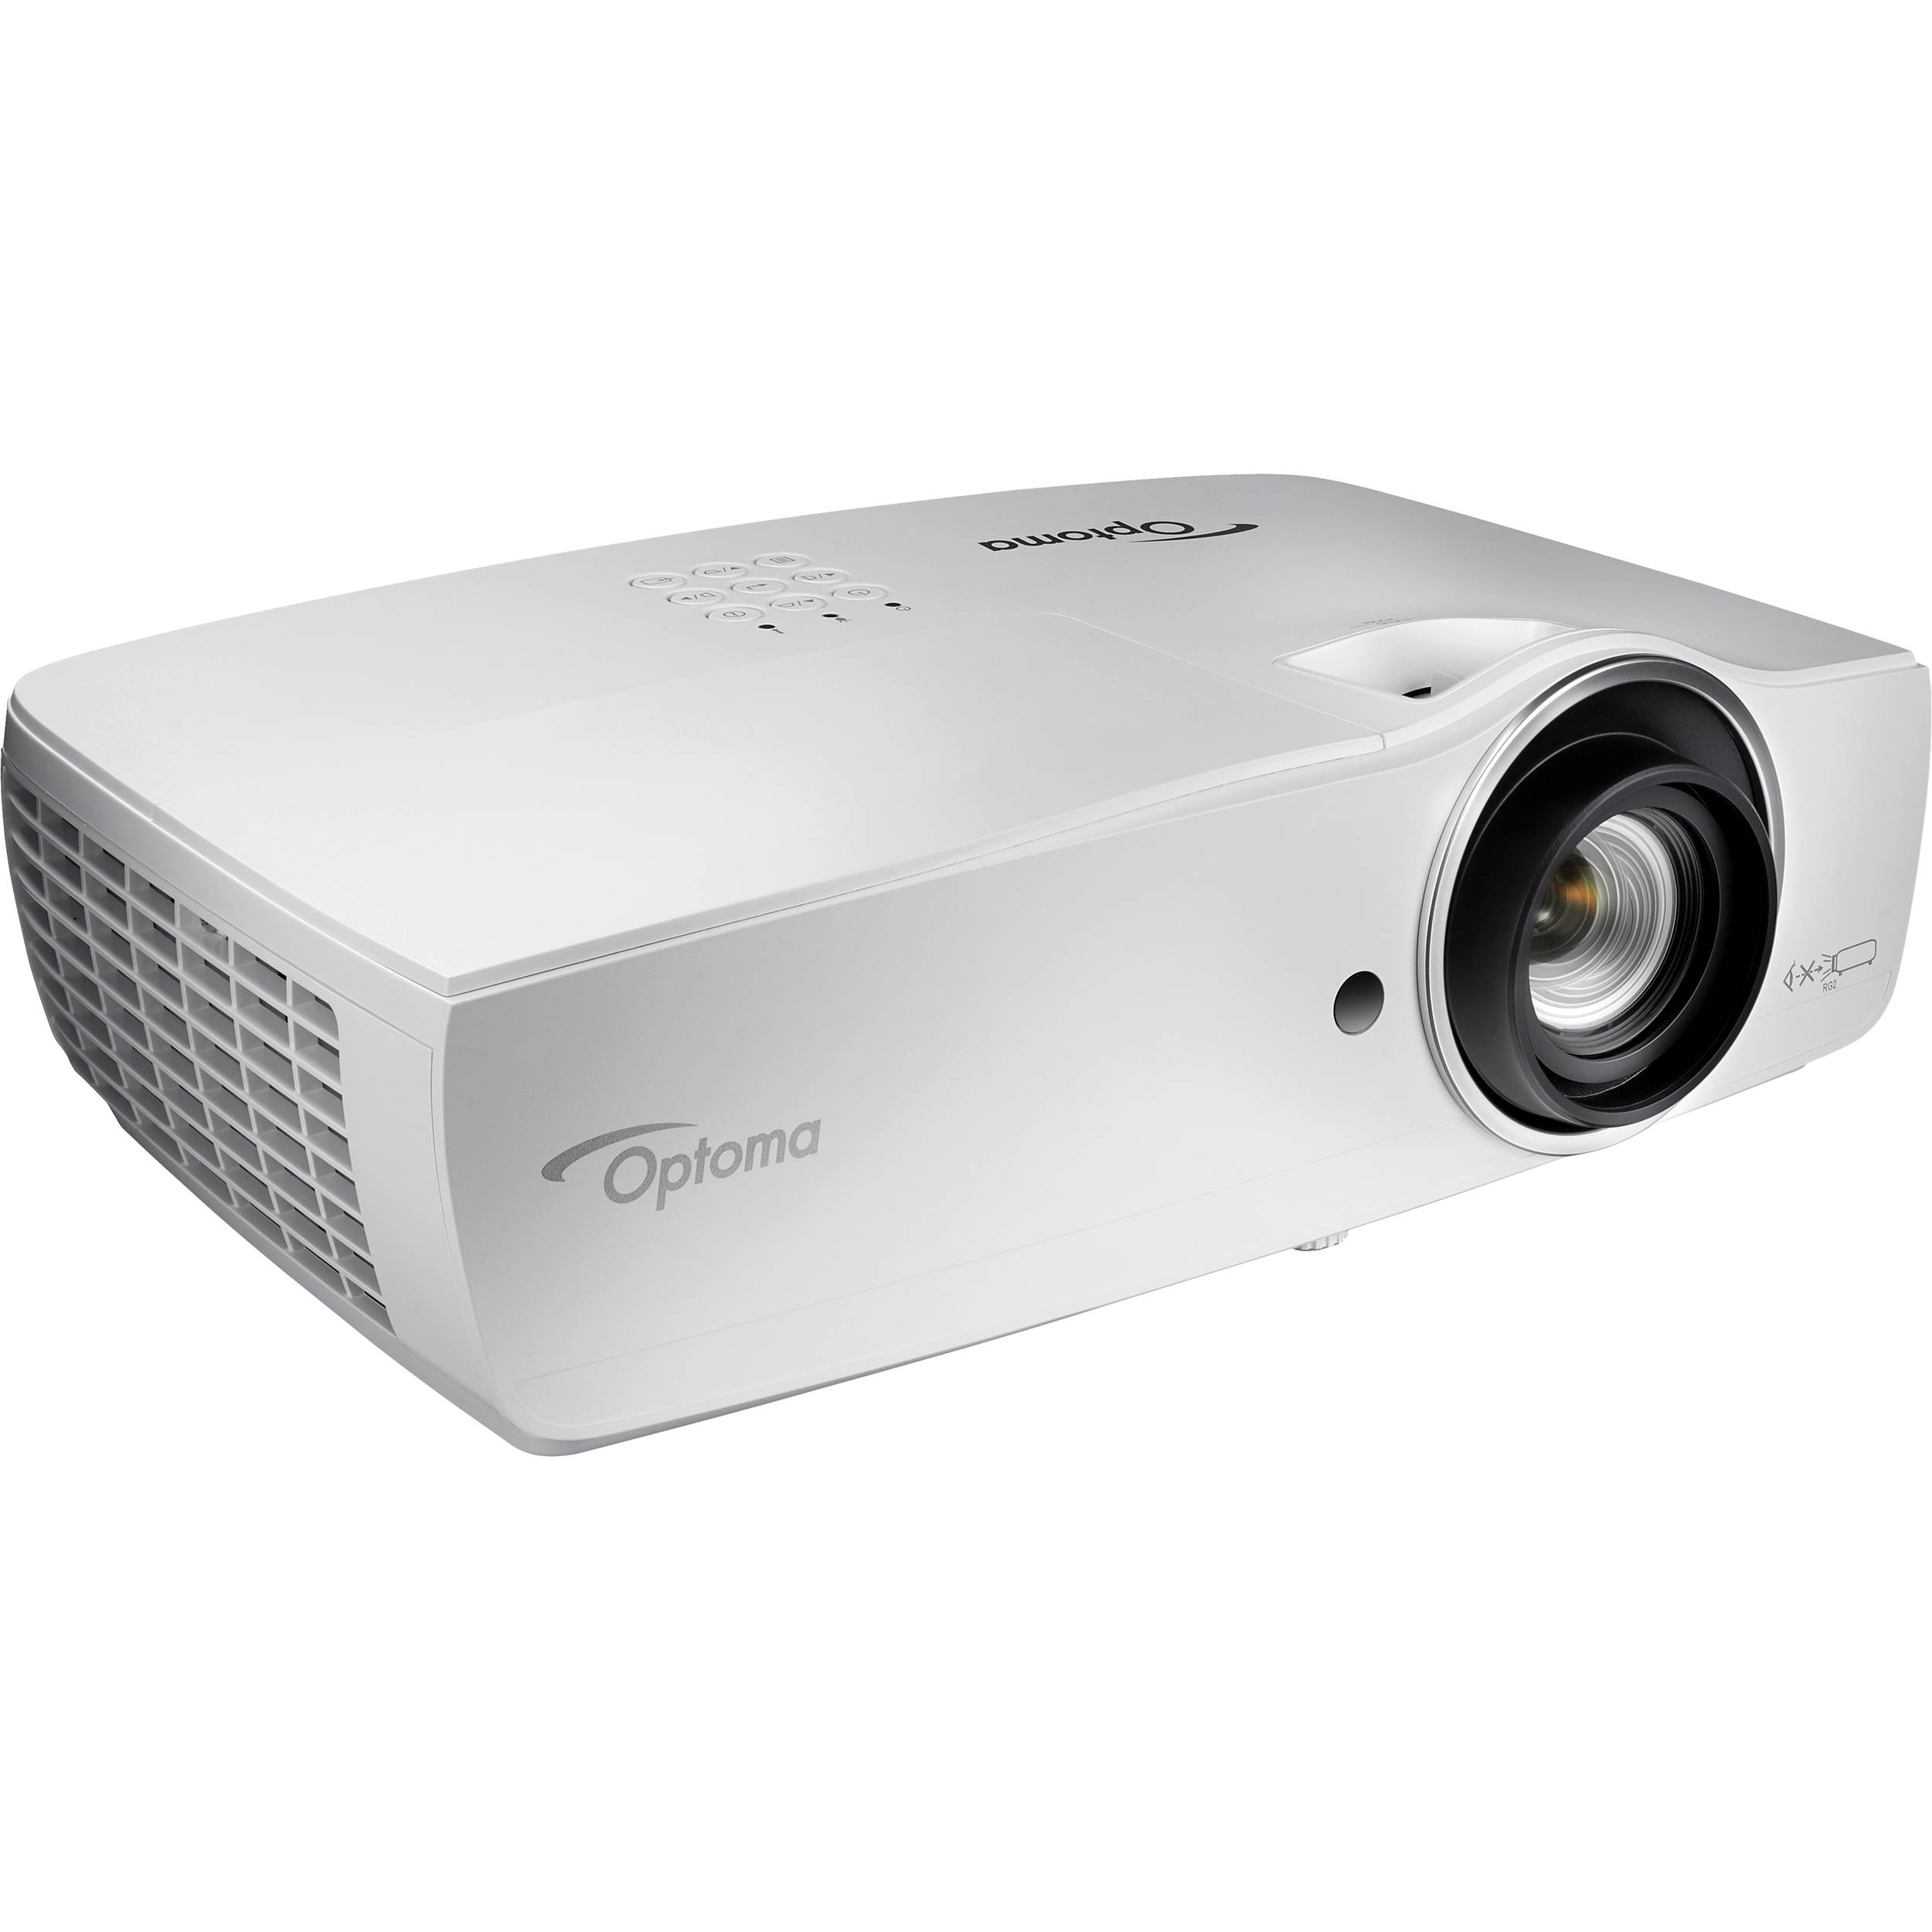 76229c45b Optoma Technology EH465 4800-Lumen Full HD DLP Projector EH465